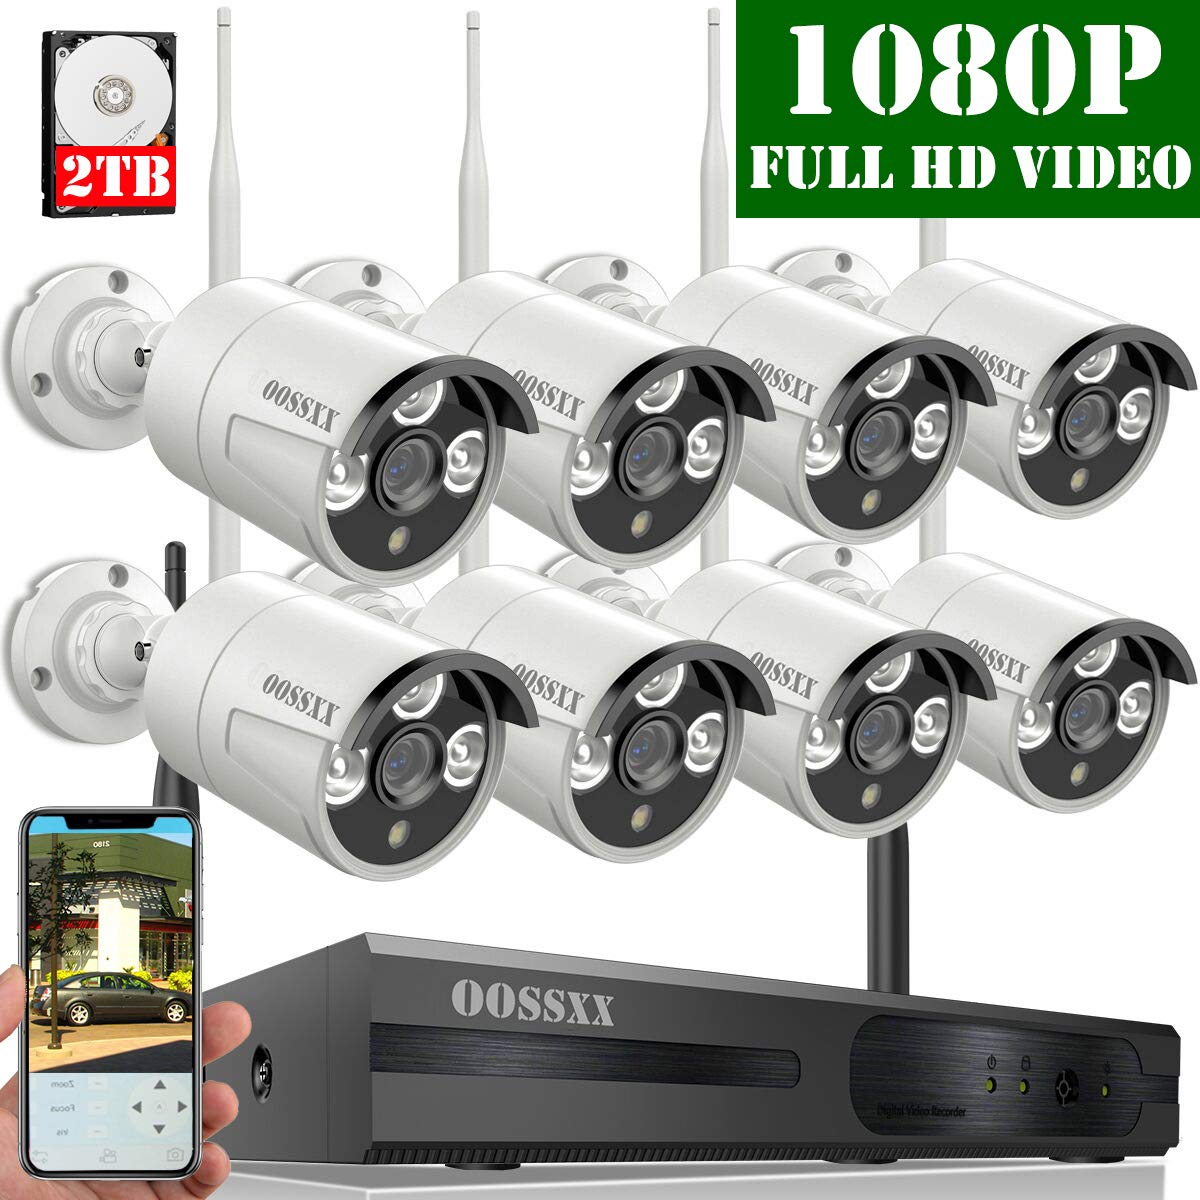 2019 Update OOSSXX 8-Channel HD 1080P Wireless Security Camera System,8Pcs 1080P 2.0 Megapixel Wireless Indoor Outdoor IR Bullet IP Cameras,P2P,App, HDMI Cord 2TB HDD Pre-Install